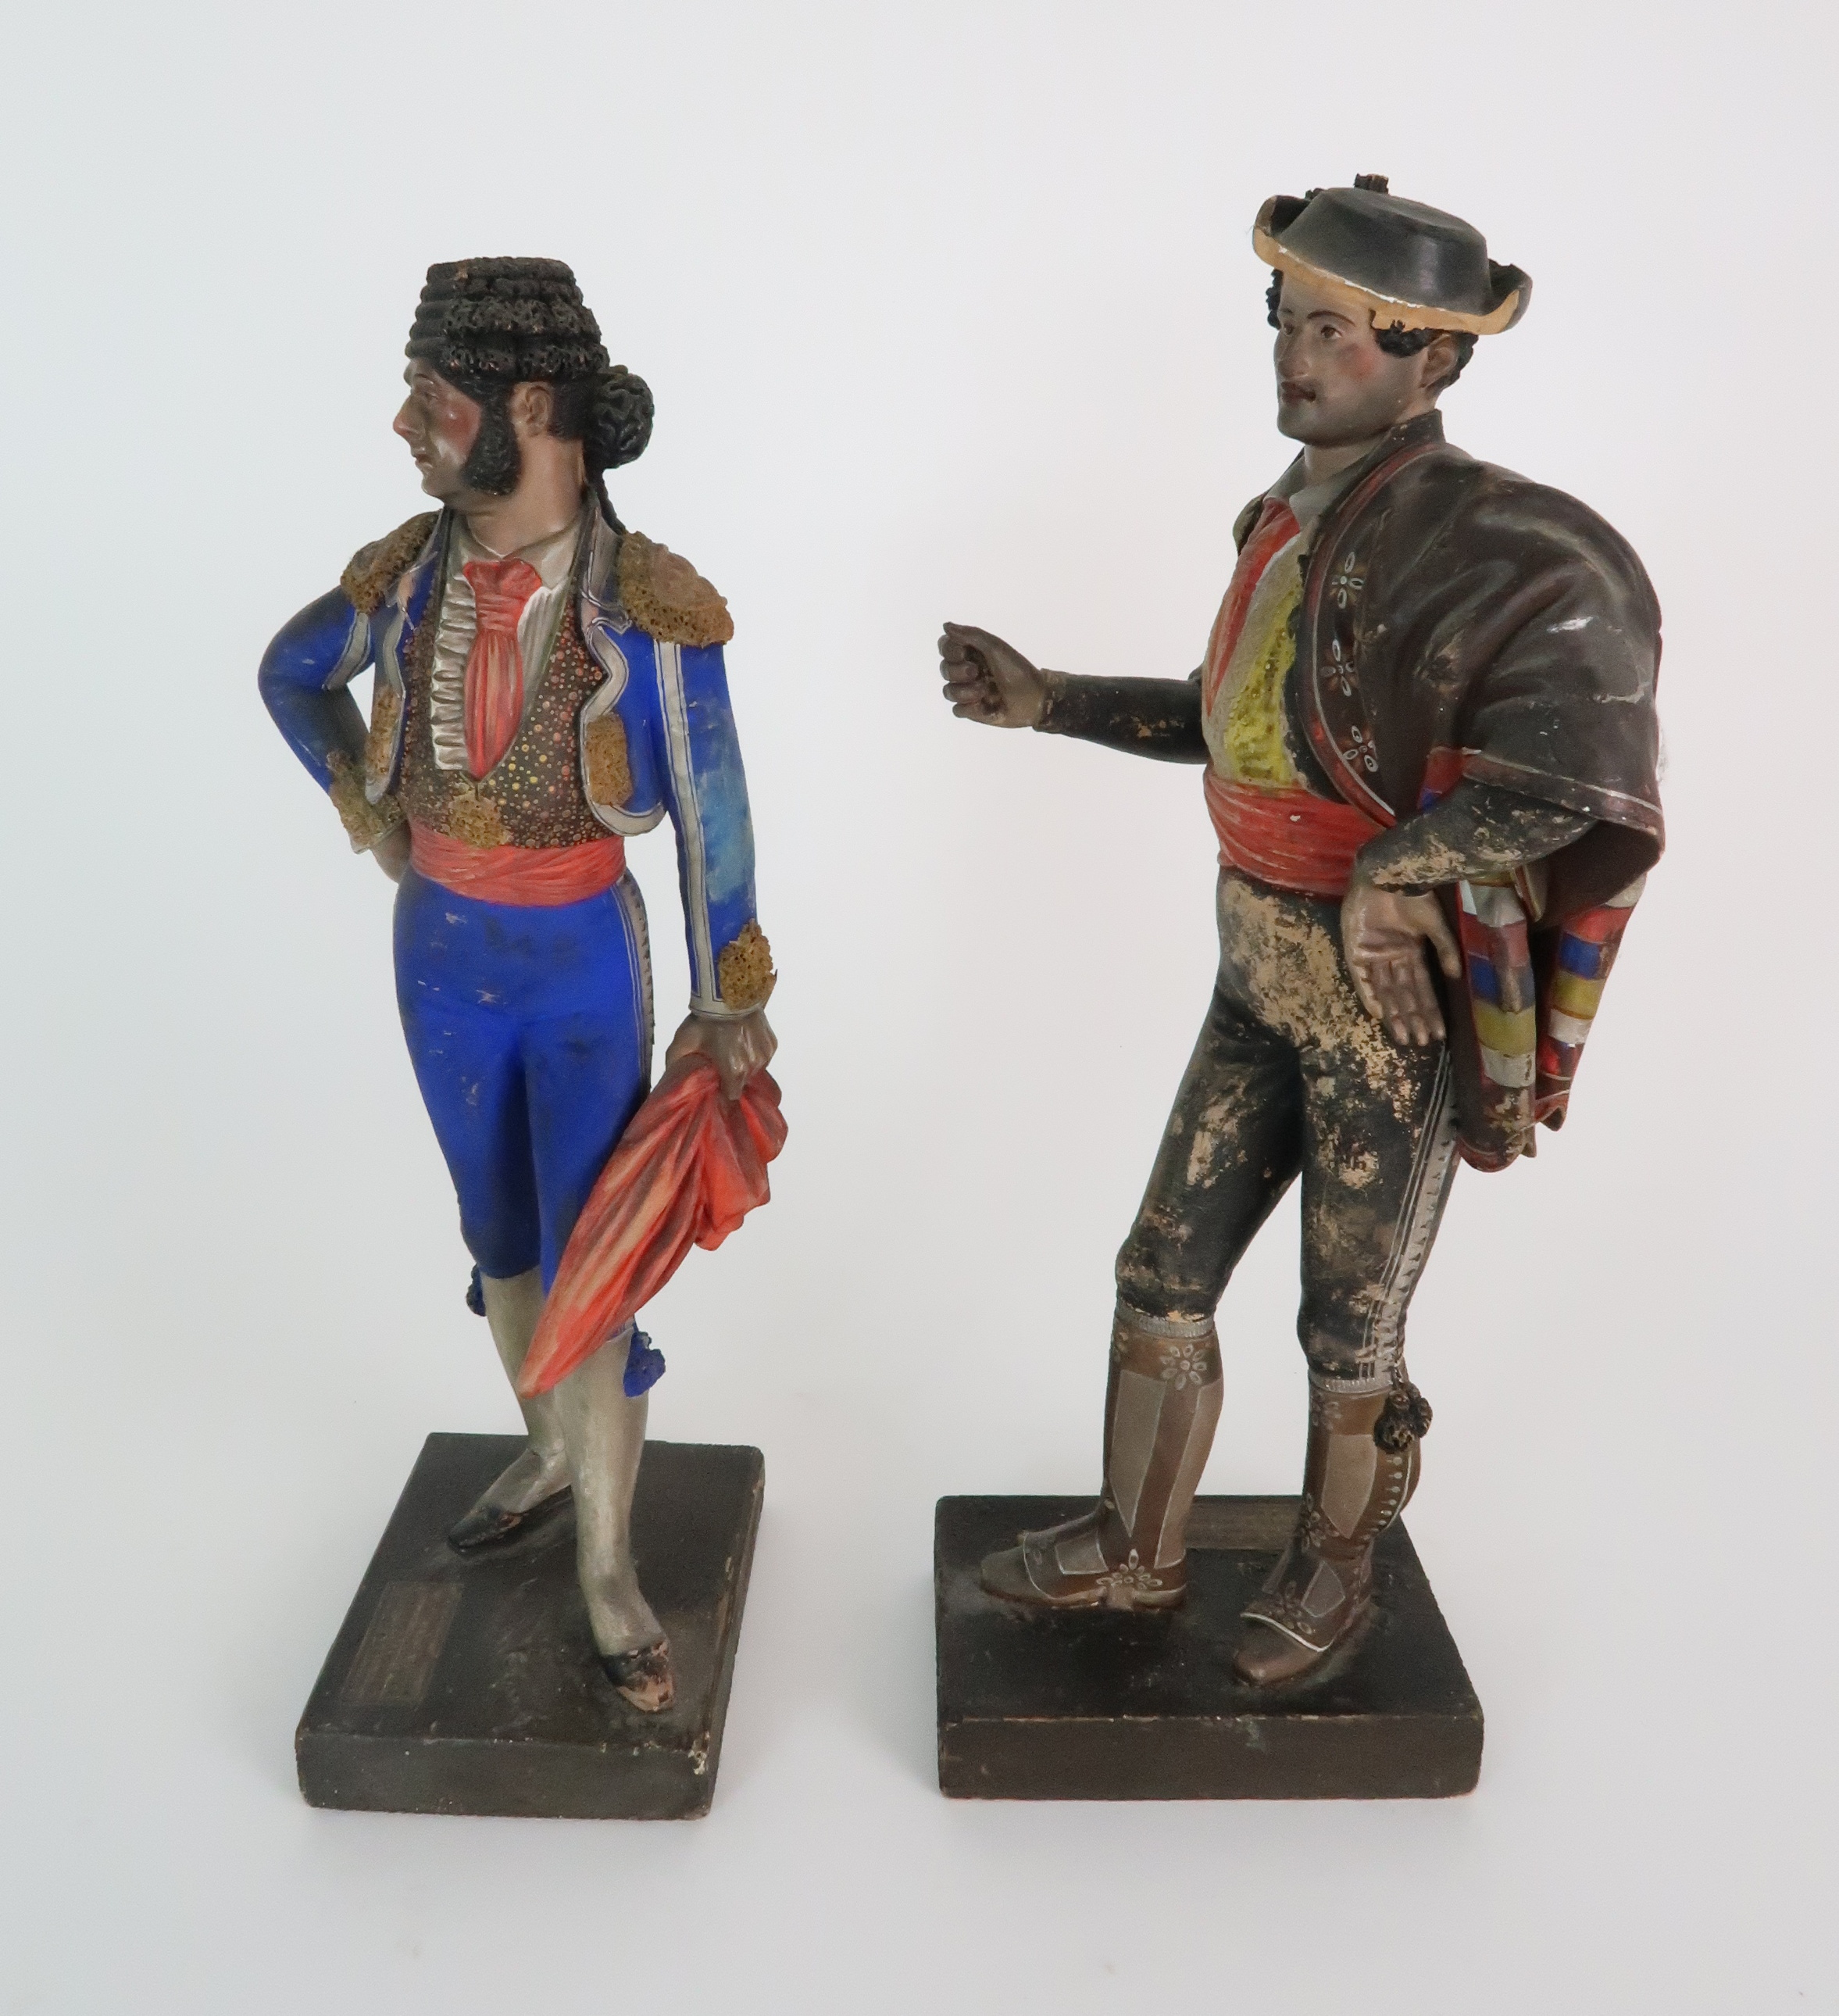 JOSE CUBERO, MALAGA - A PAIR OF MID 19TH CENTURY COLD PAINTED TERRACOTTA FIGURES one a matador, - Image 2 of 8